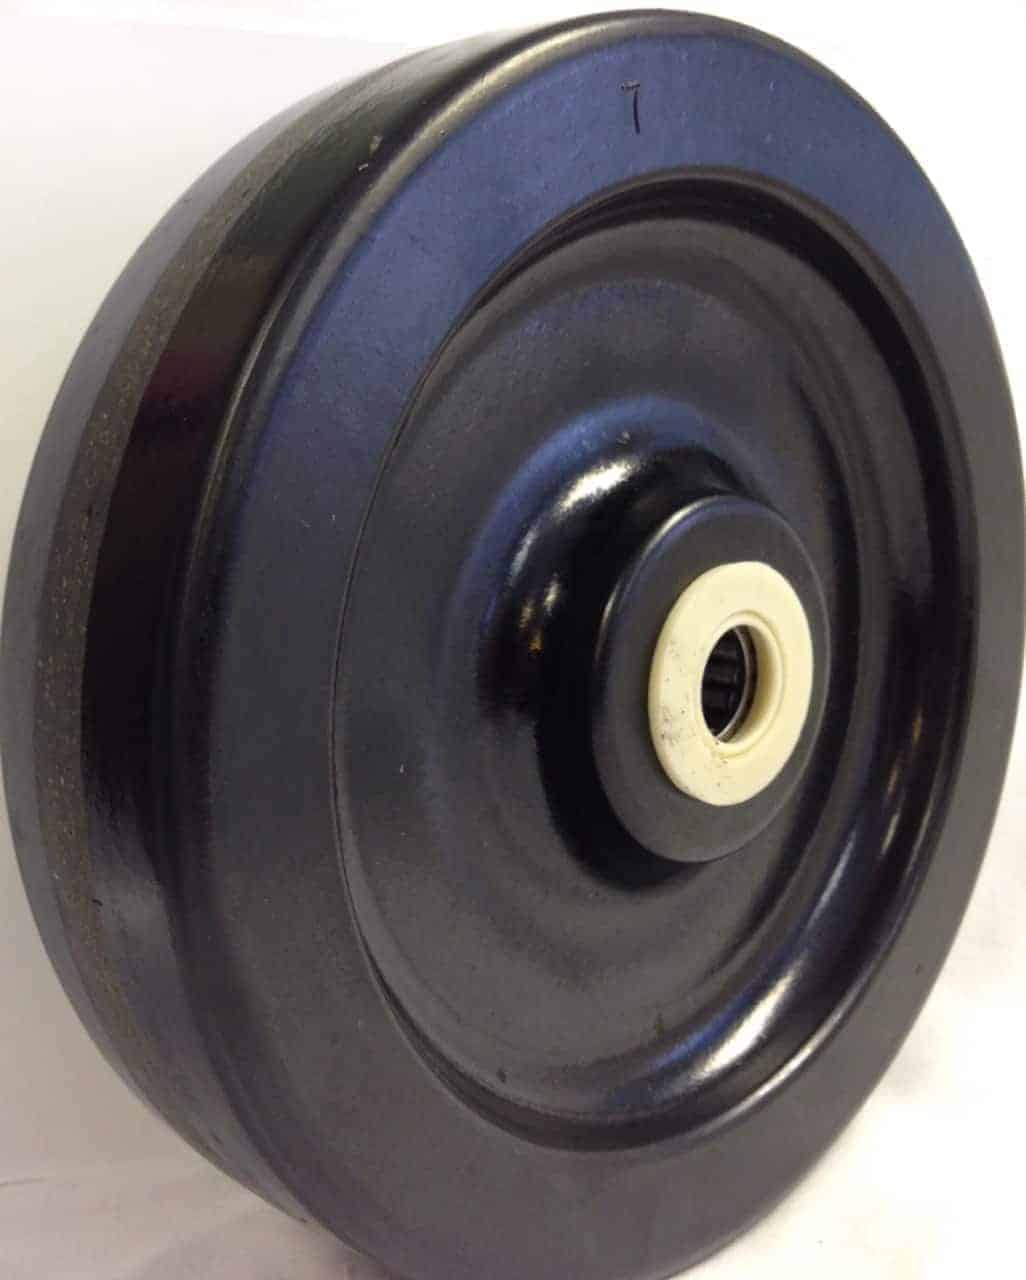 12″ Phenolic Wheel With 2-3/4″ Hub 1″ Roller Bearing 3000 Lbs Capacity